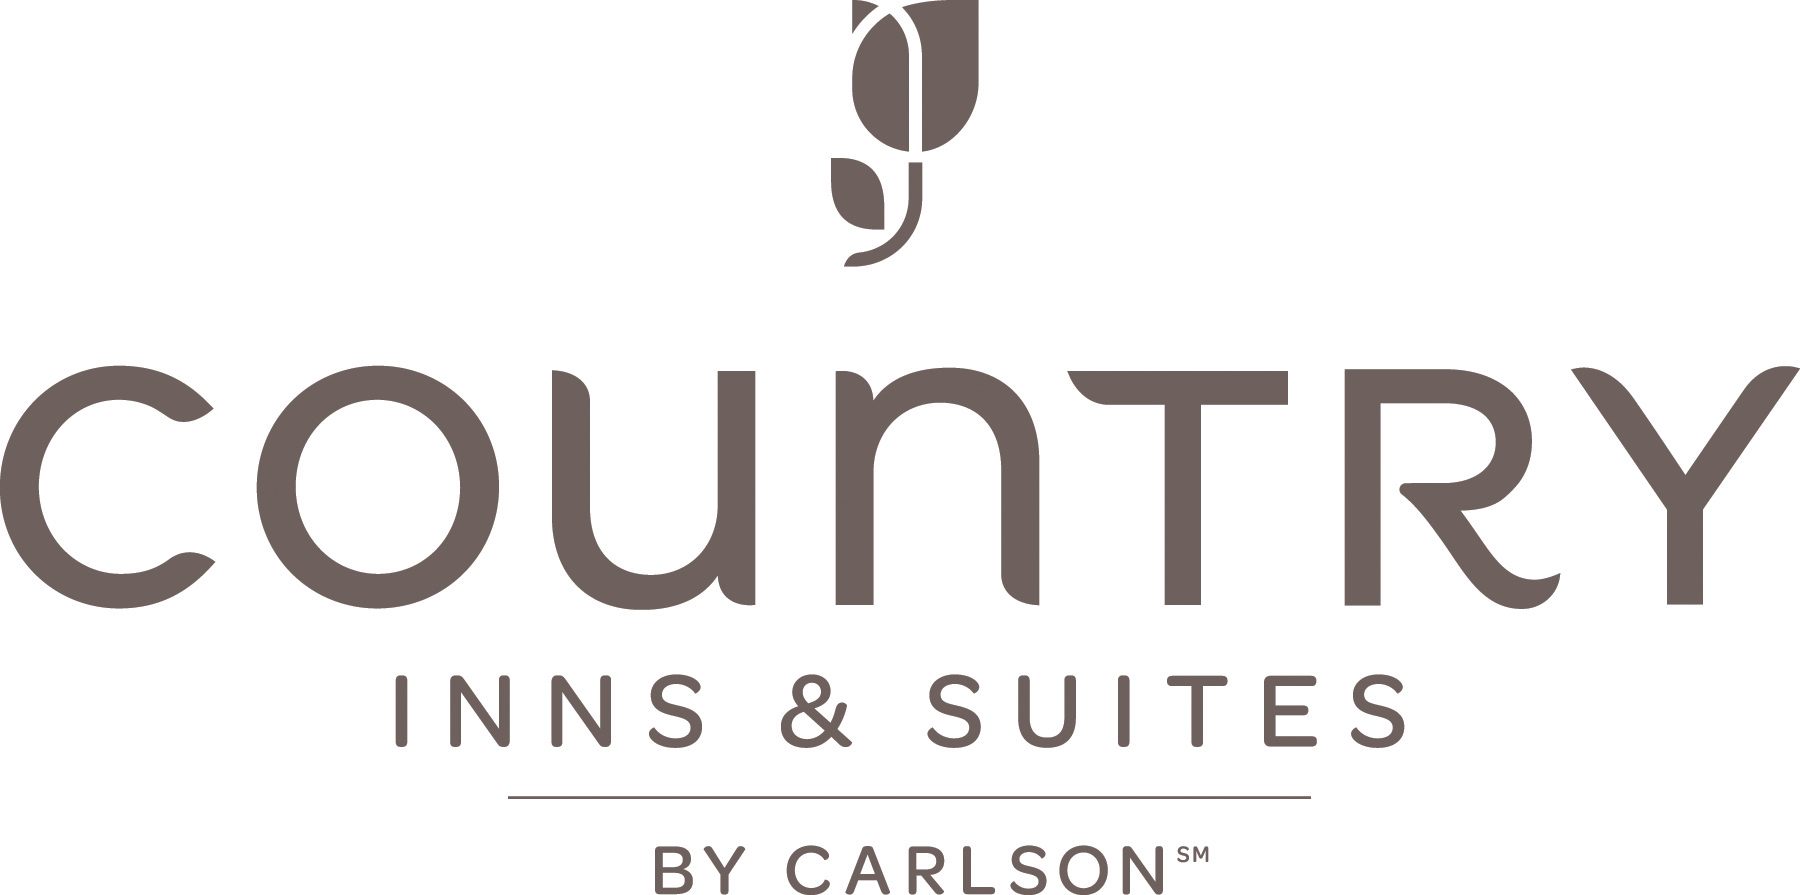 Country Inn & Suites By Carlson, San Diego North, CA logo